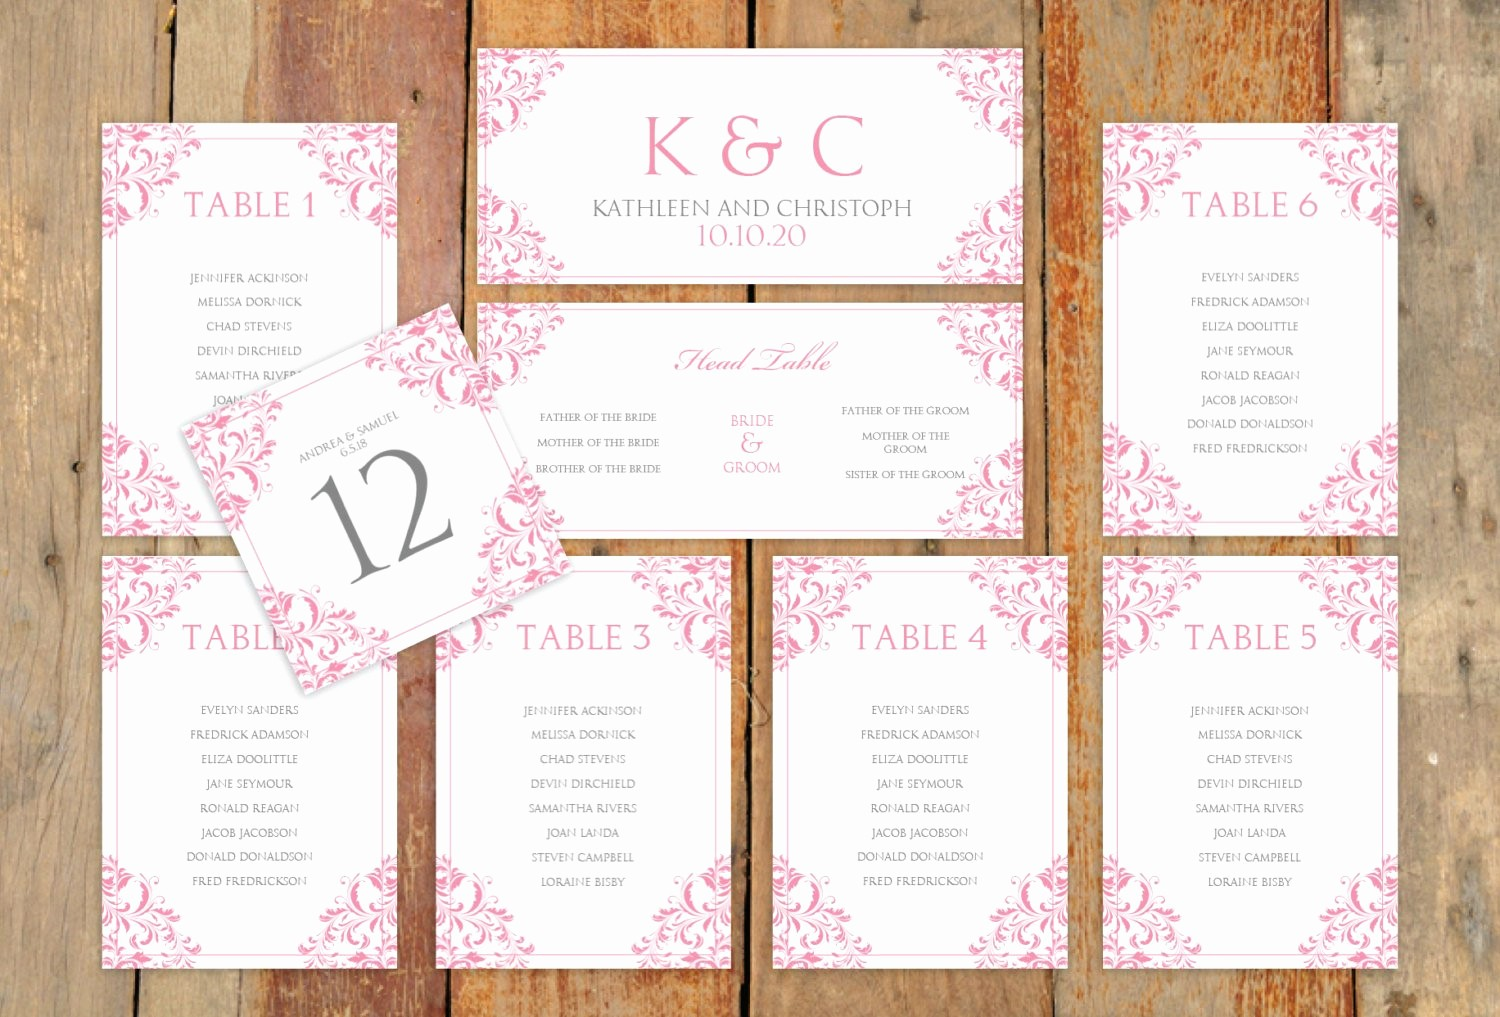 Seating Chart Wedding Template Free Luxury Wedding Seating Chart Template Download by Karmakweddings